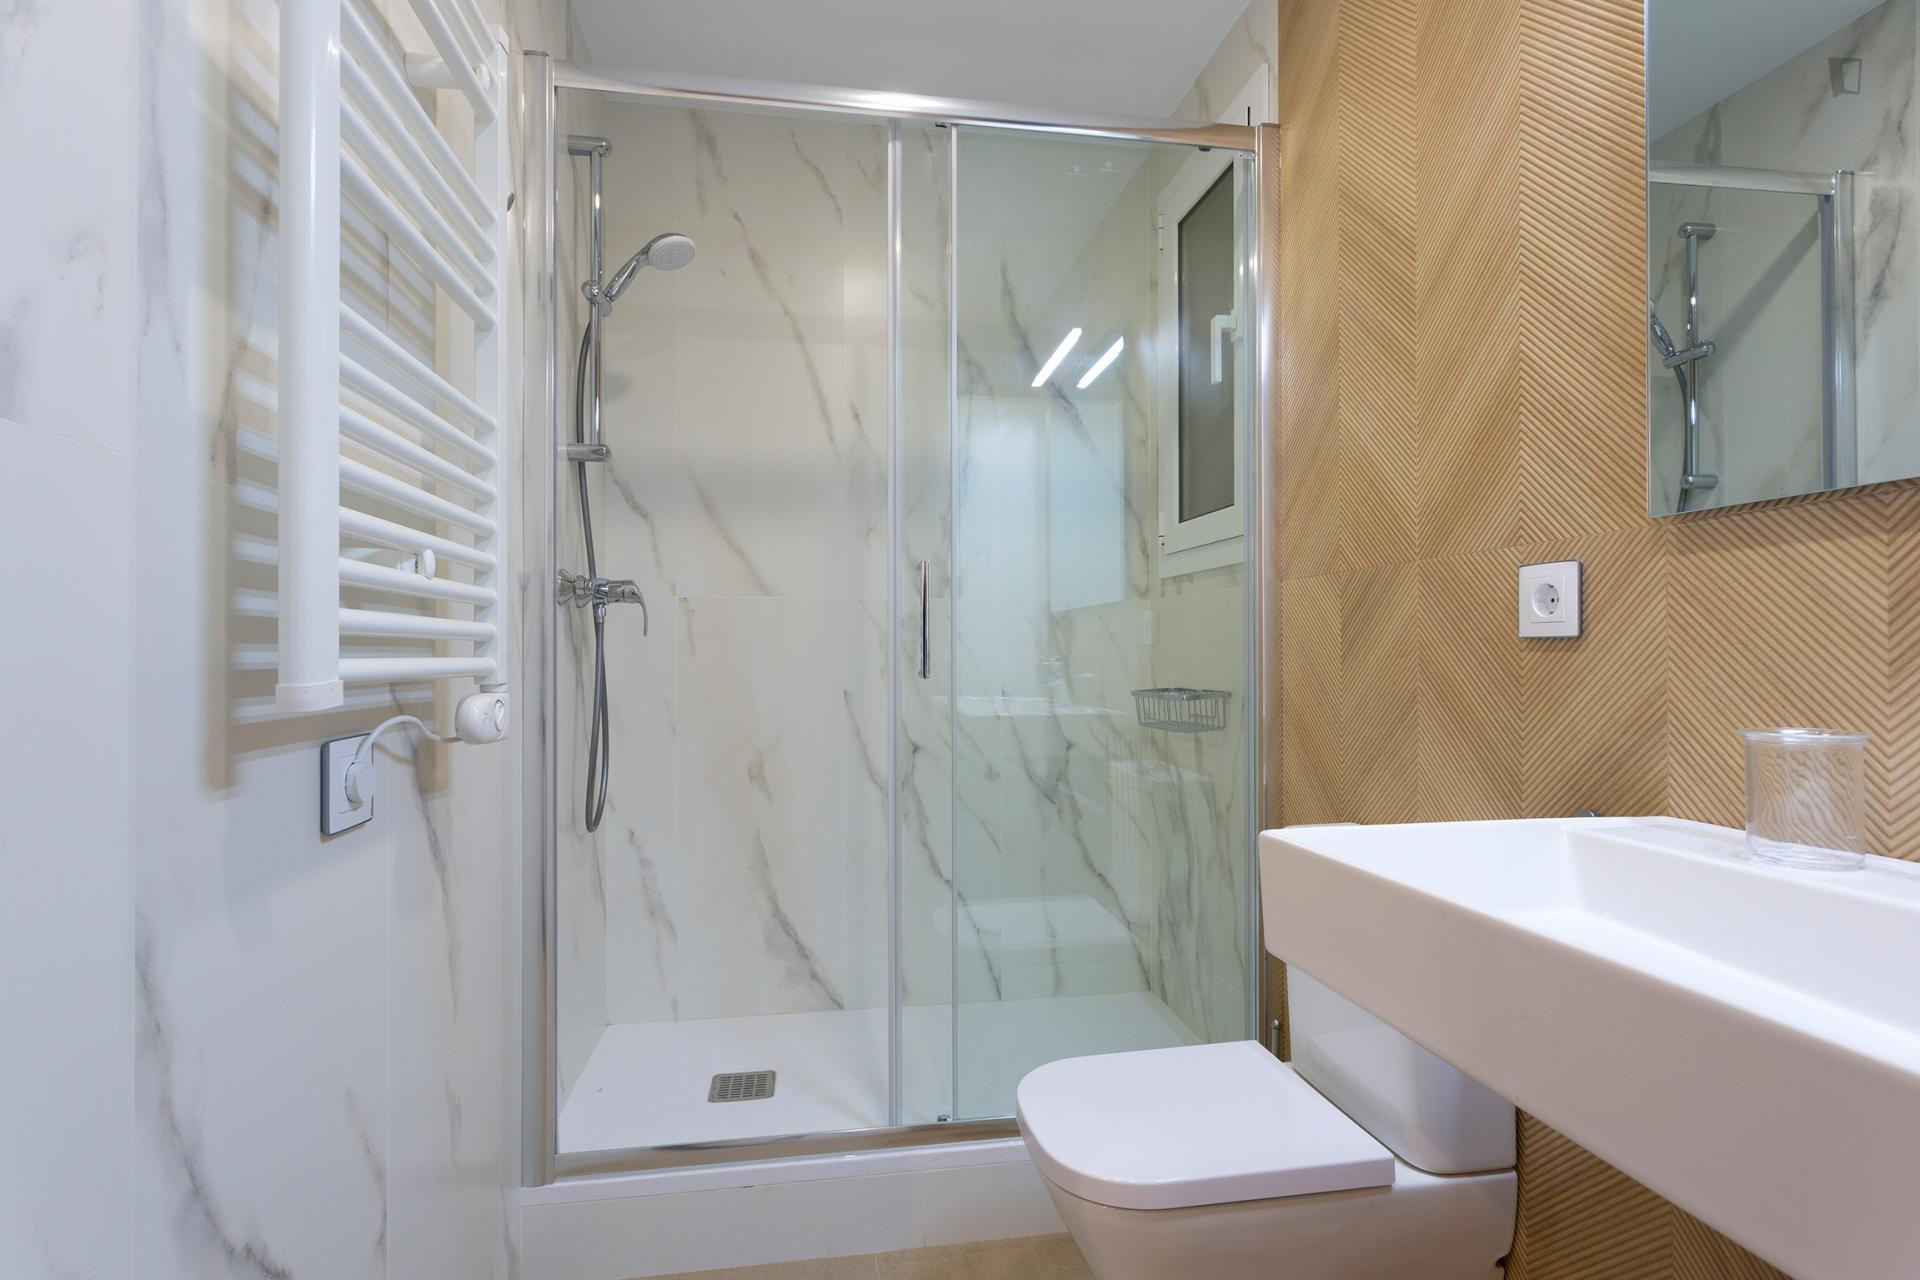 Portugalete 4 - Modern flat in Barcelona for expats